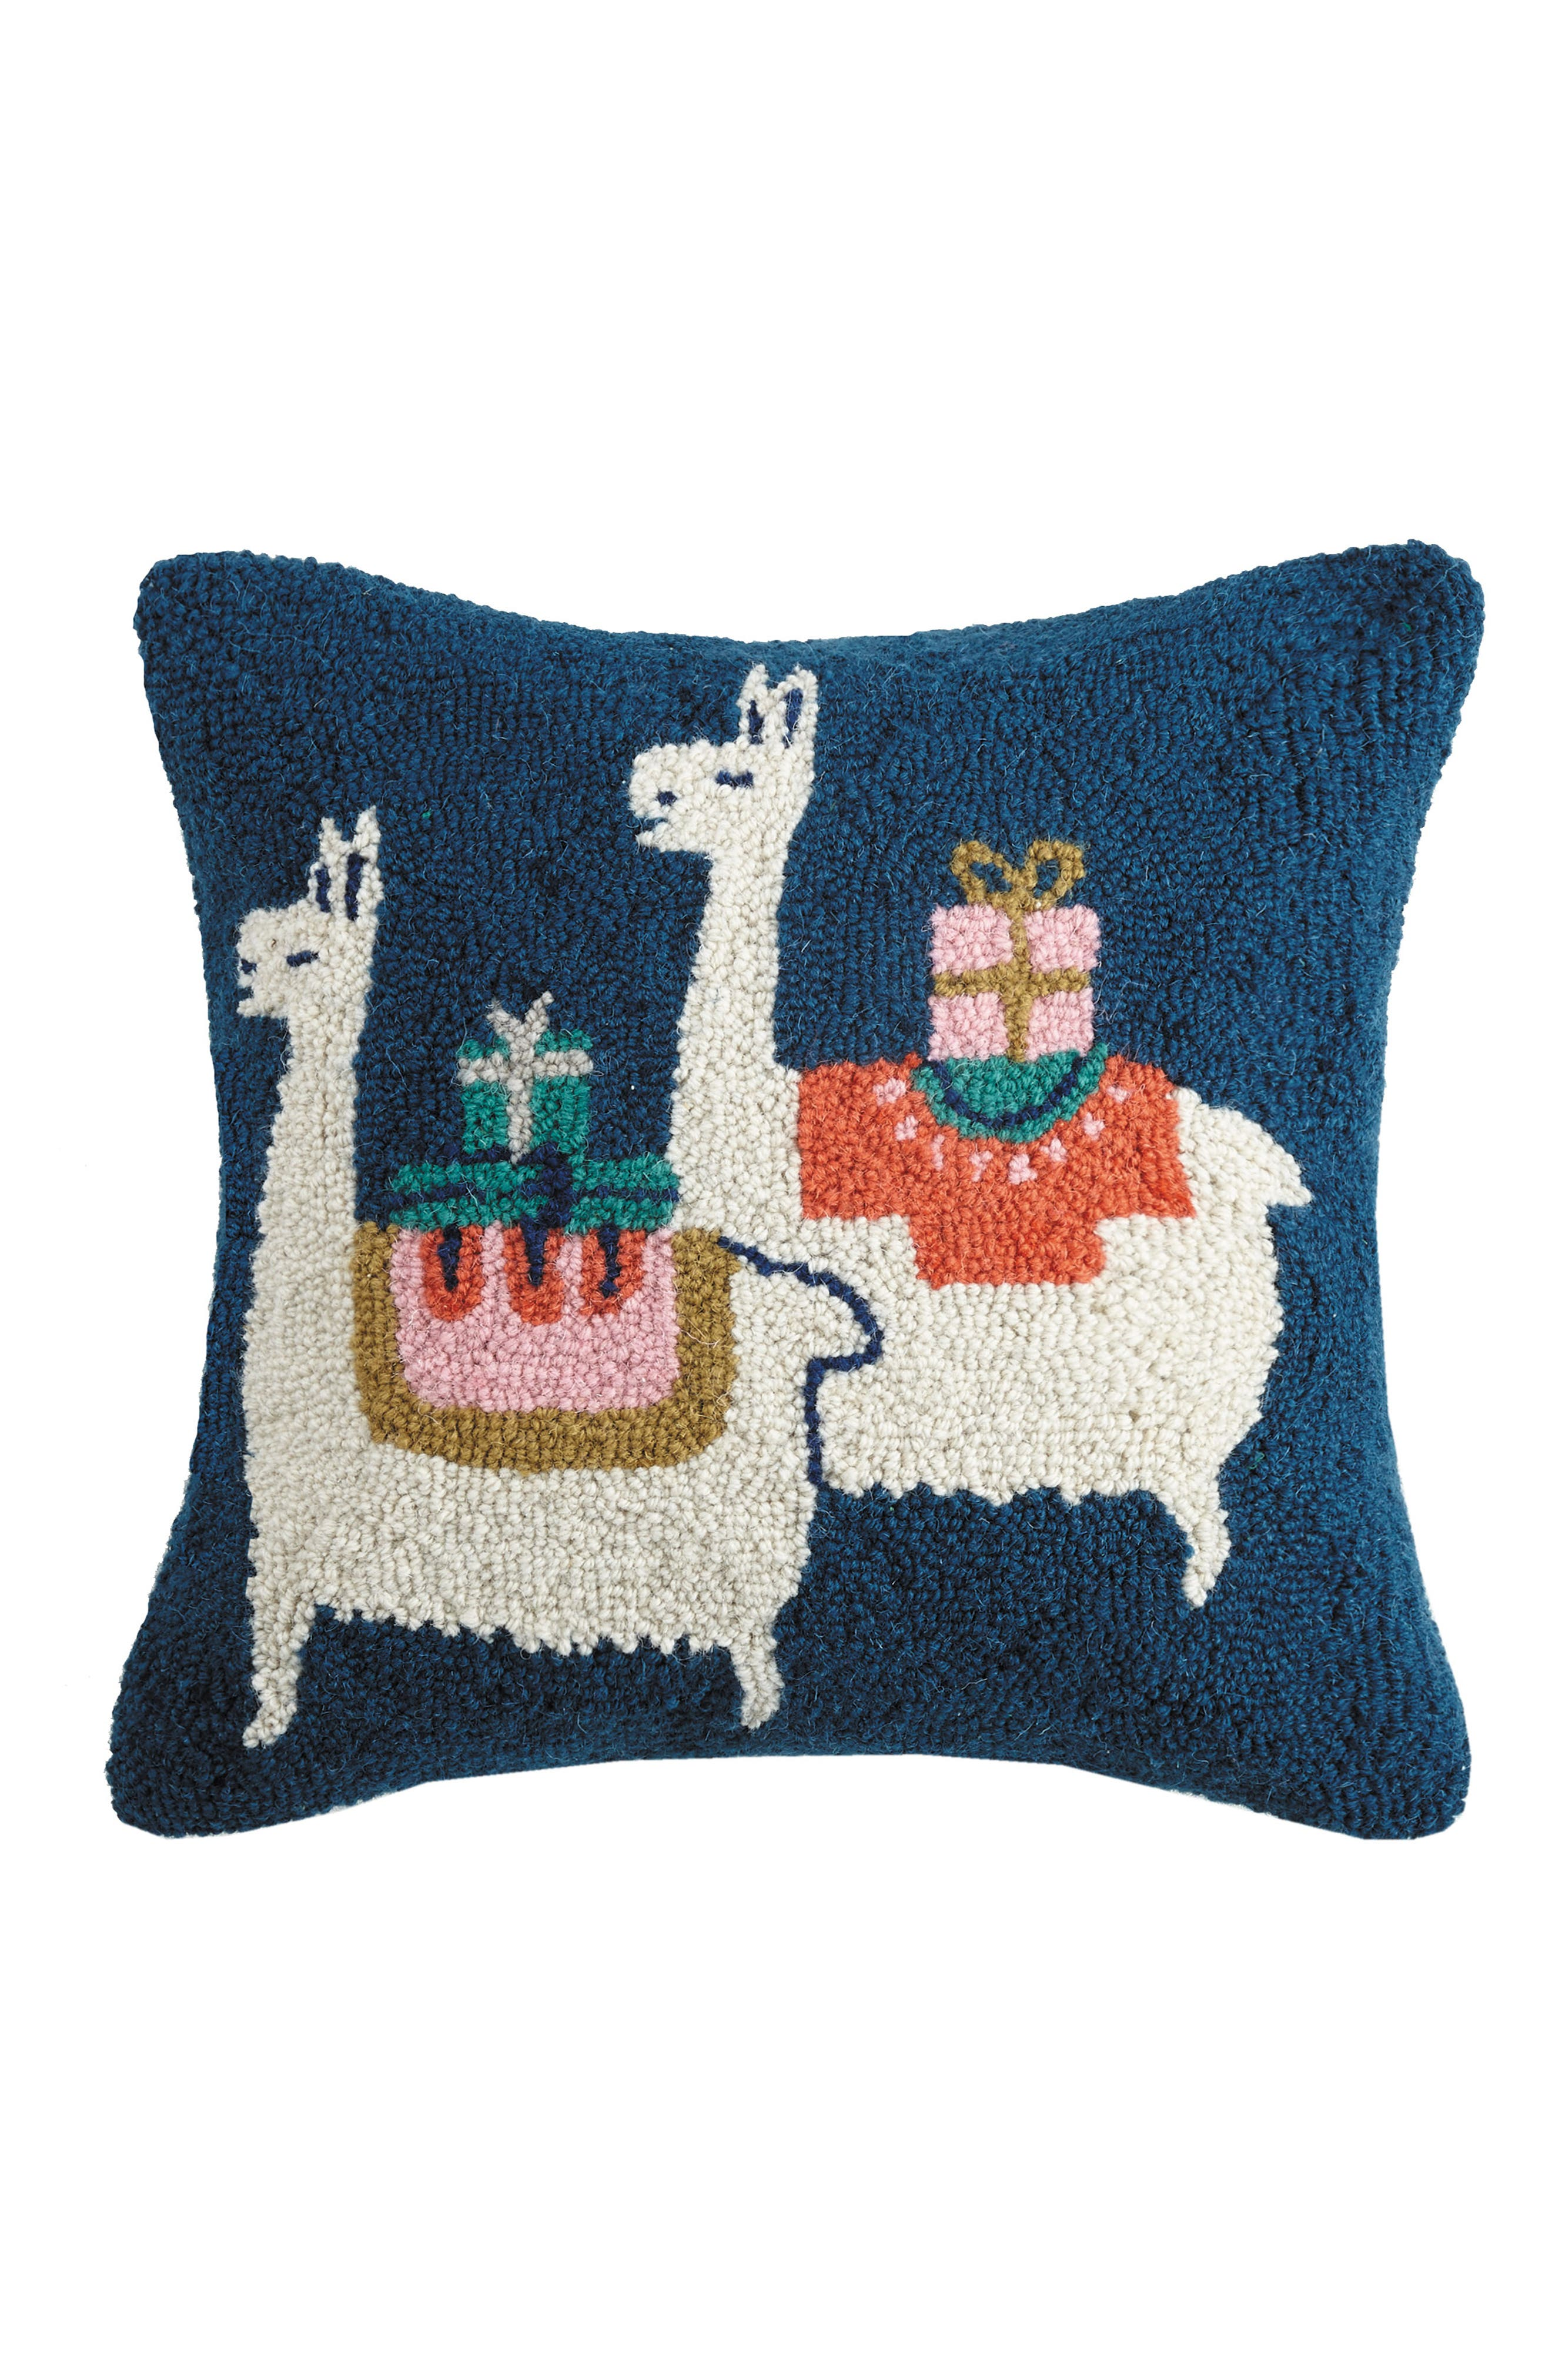 Presents from Llama Hooked Pillow,                         Main,                         color, BLUE MULTI